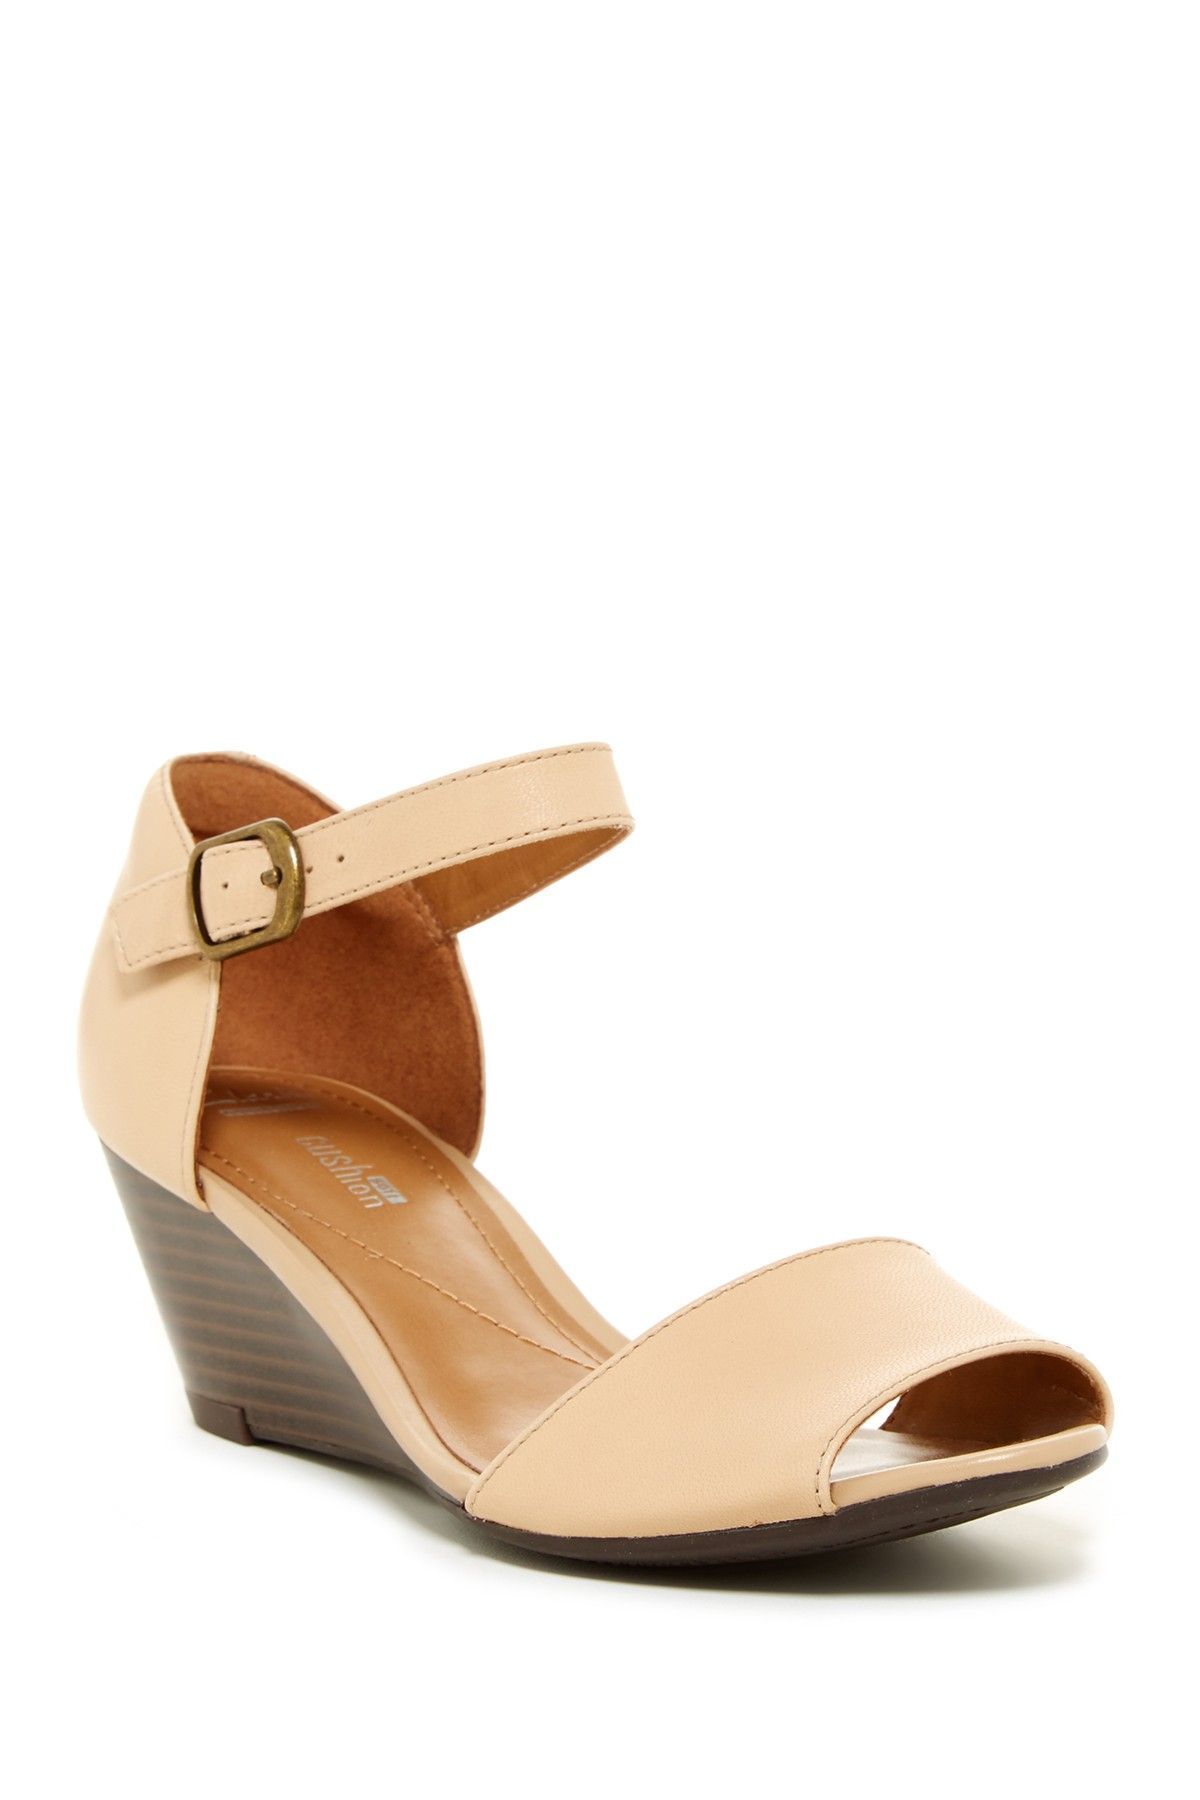 edbb4ea1600 Clarks - Brielle Drive Wedge Sandal at Nordstrom Rack. Free Shipping on  orders over  100.